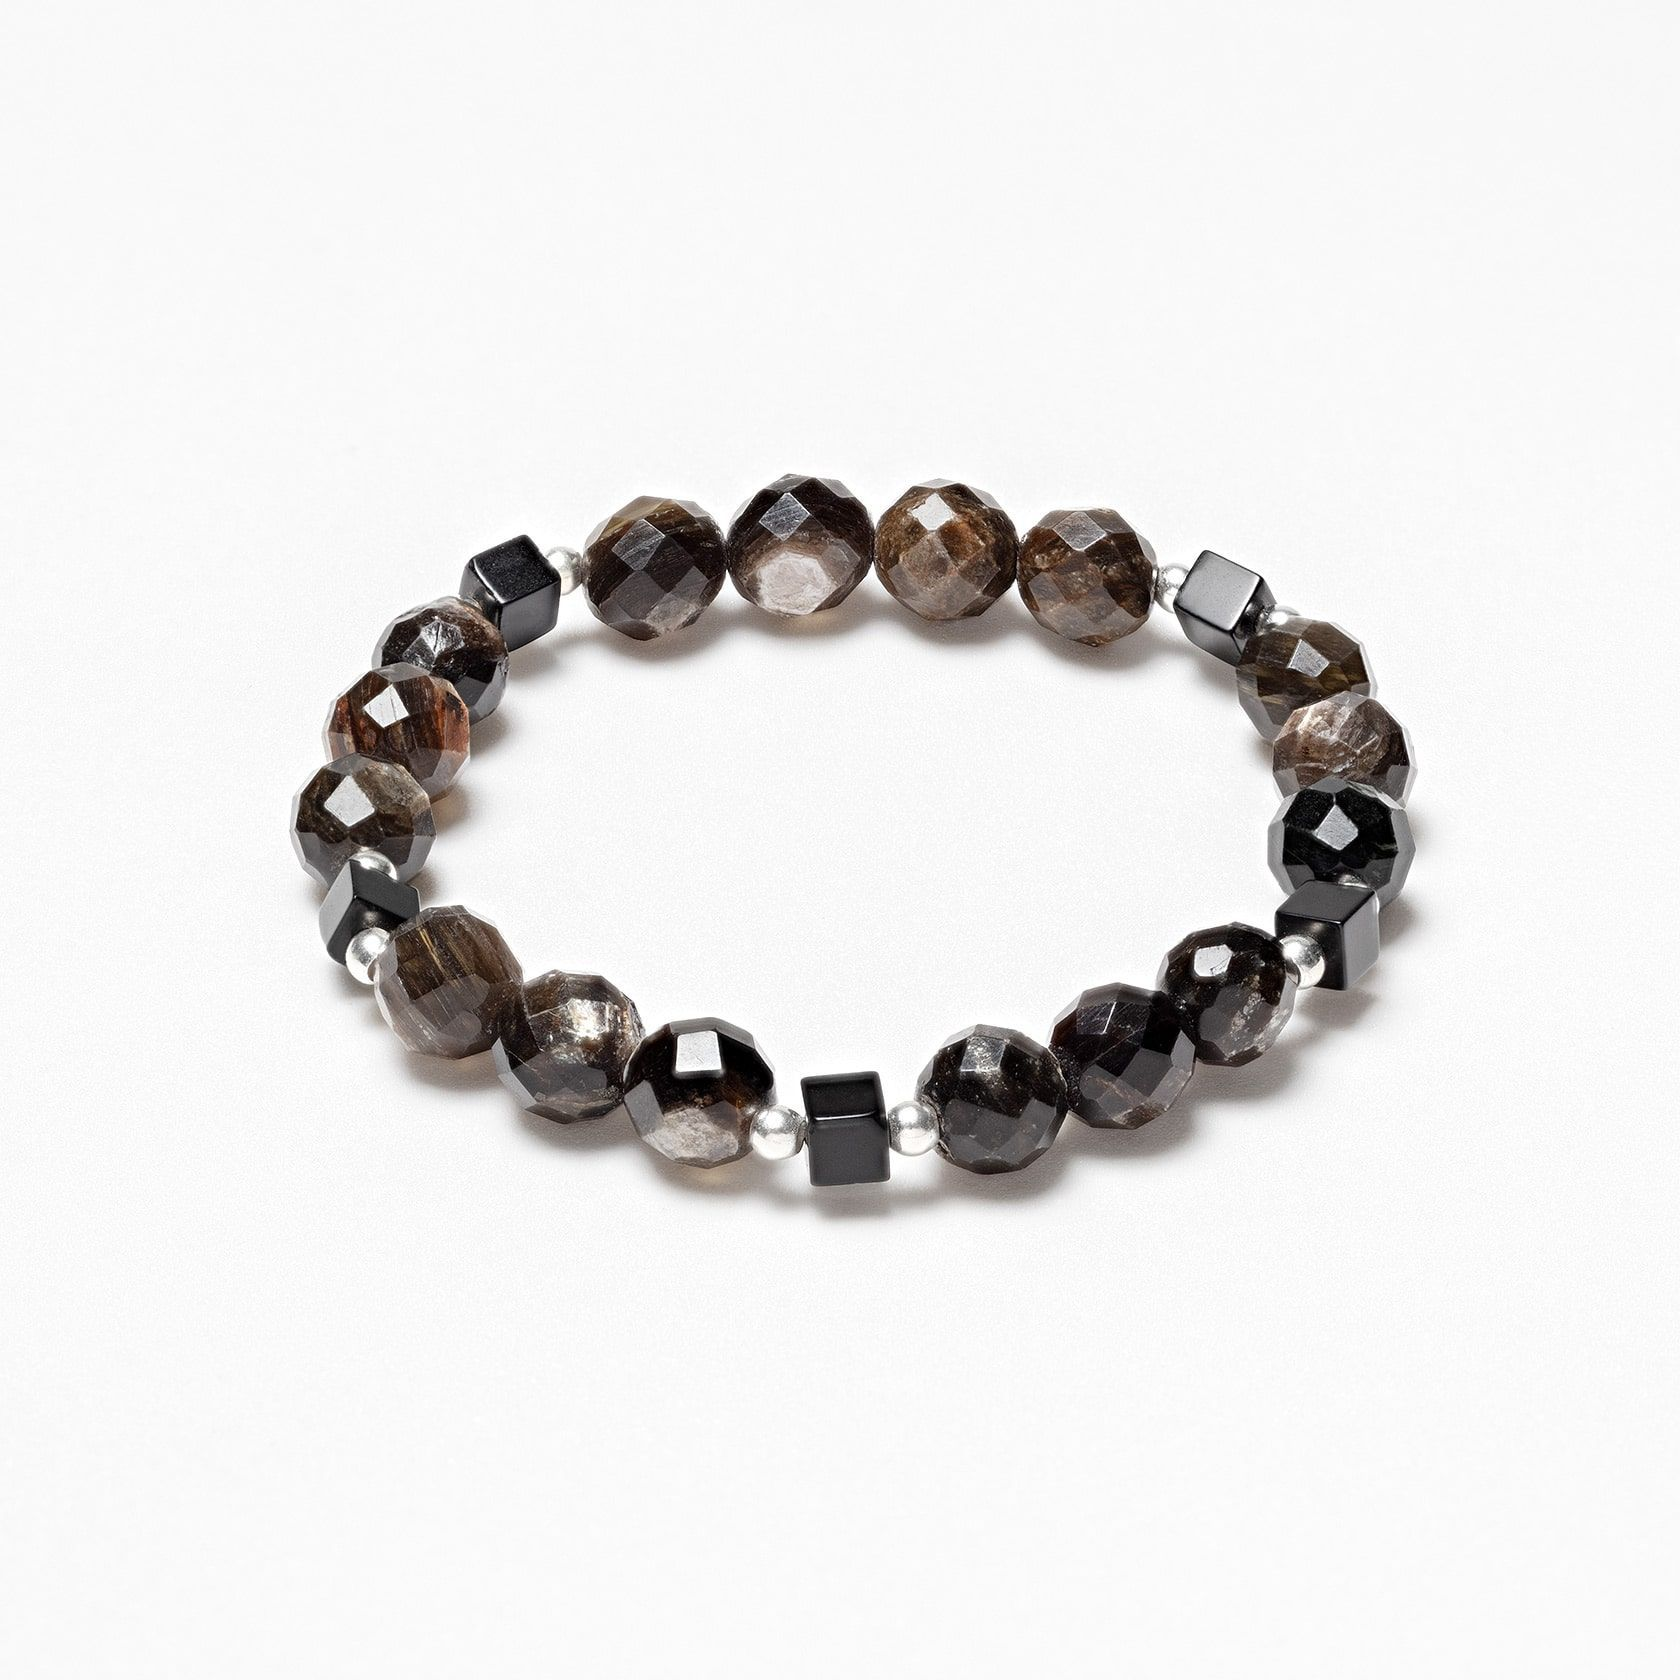 Elastic bracelet of onyx and moscovite